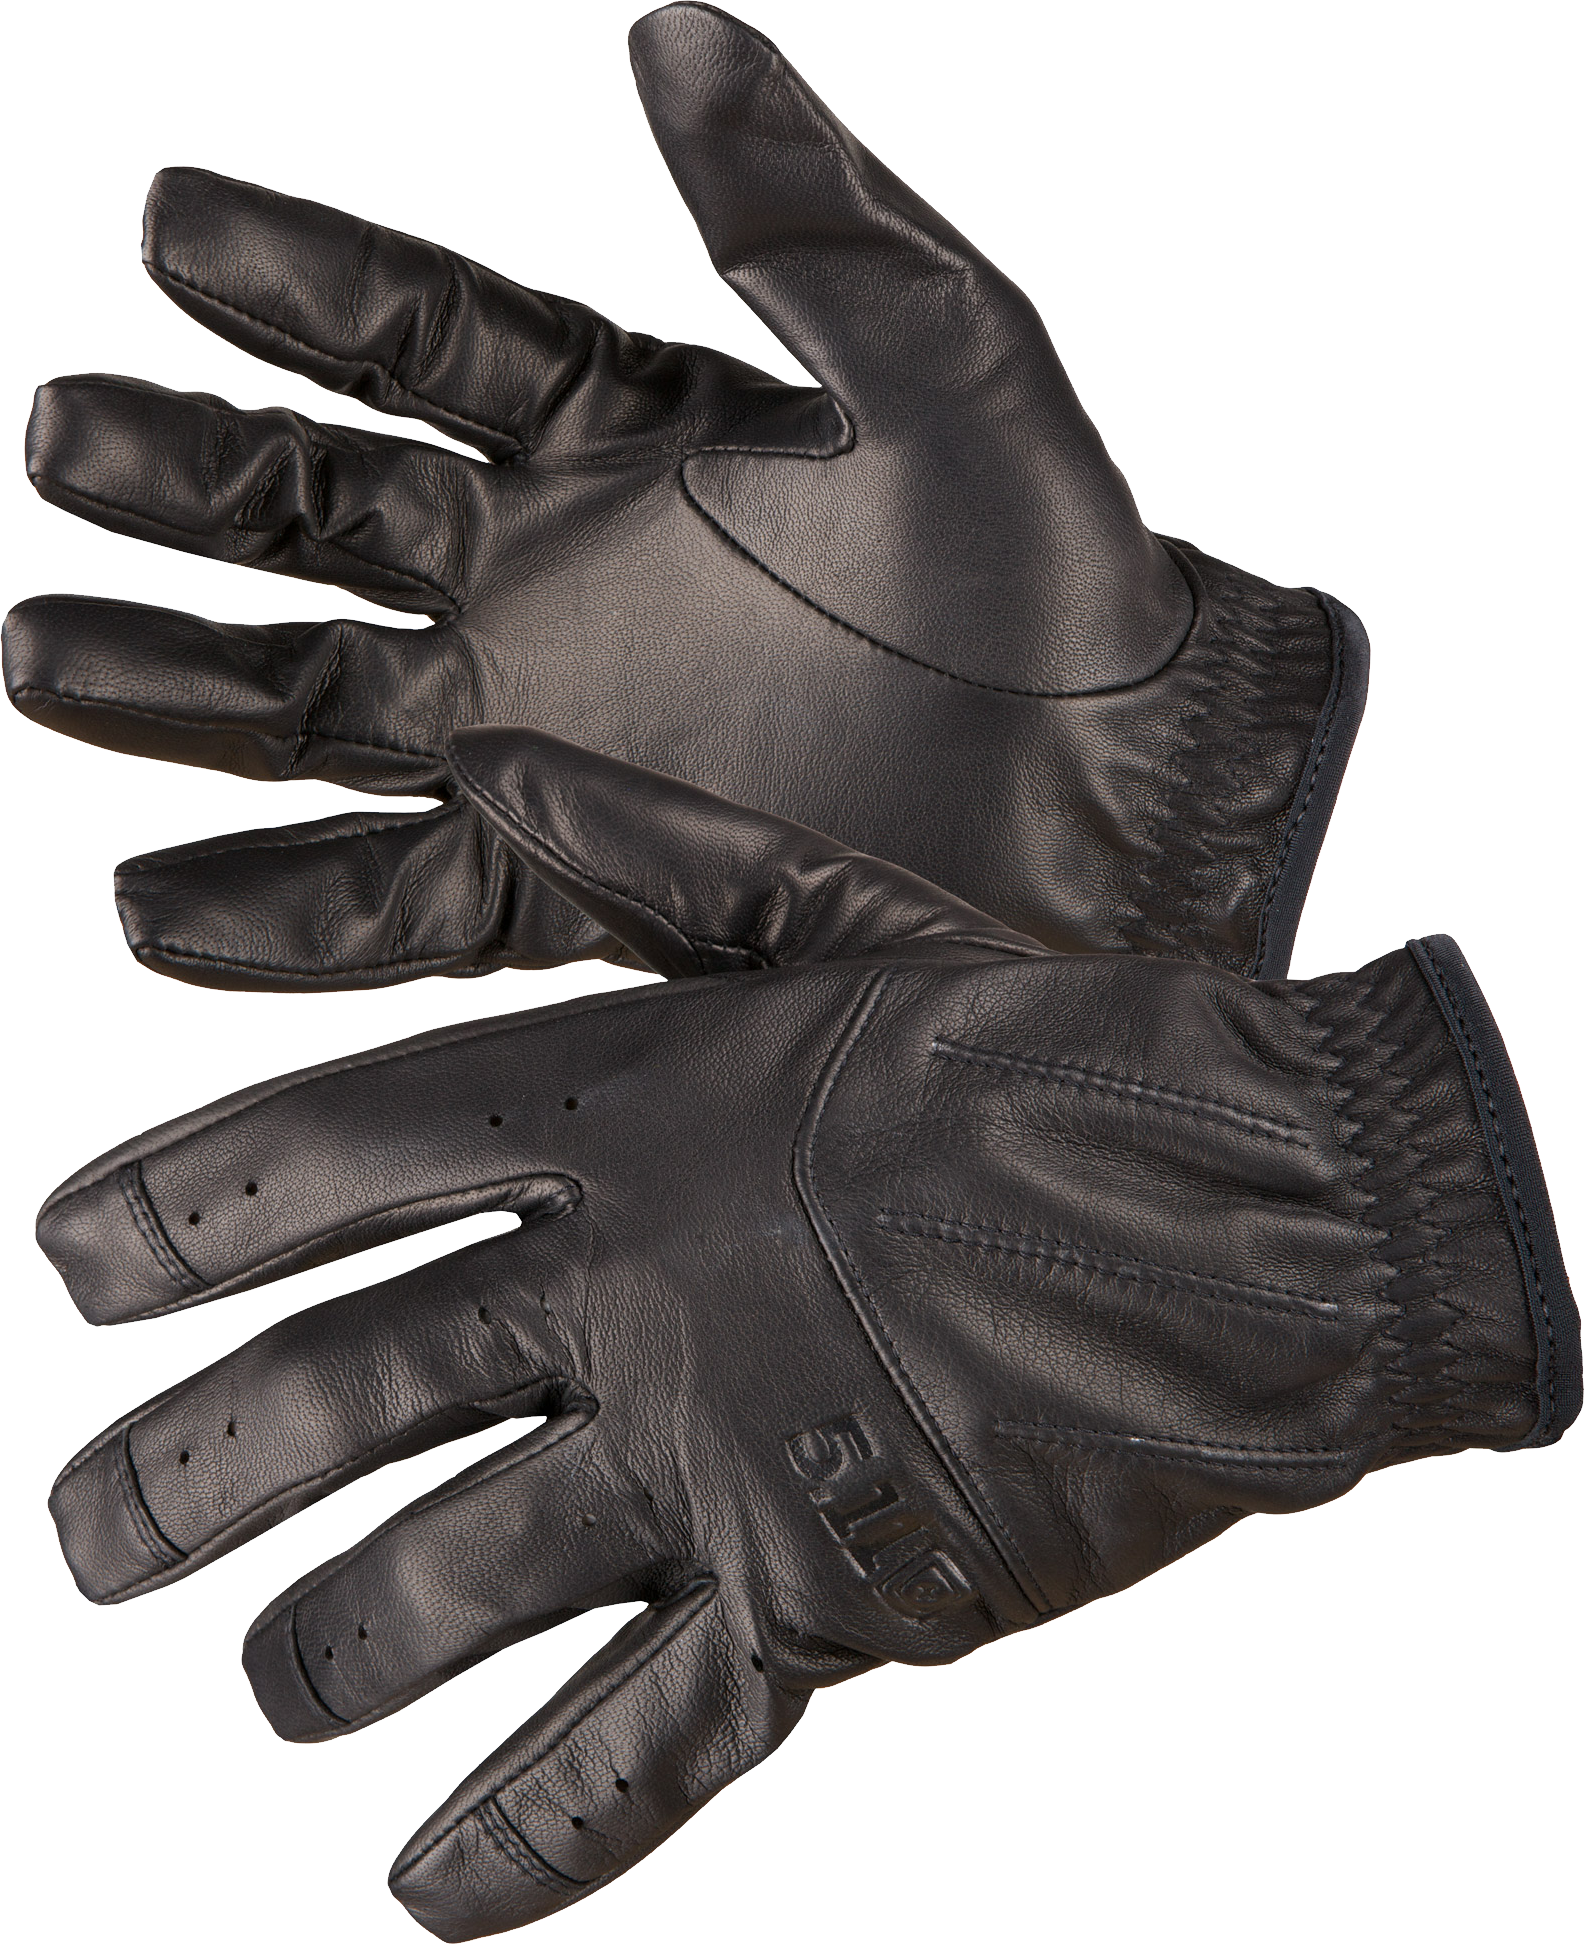 Black leather gloves PNG image